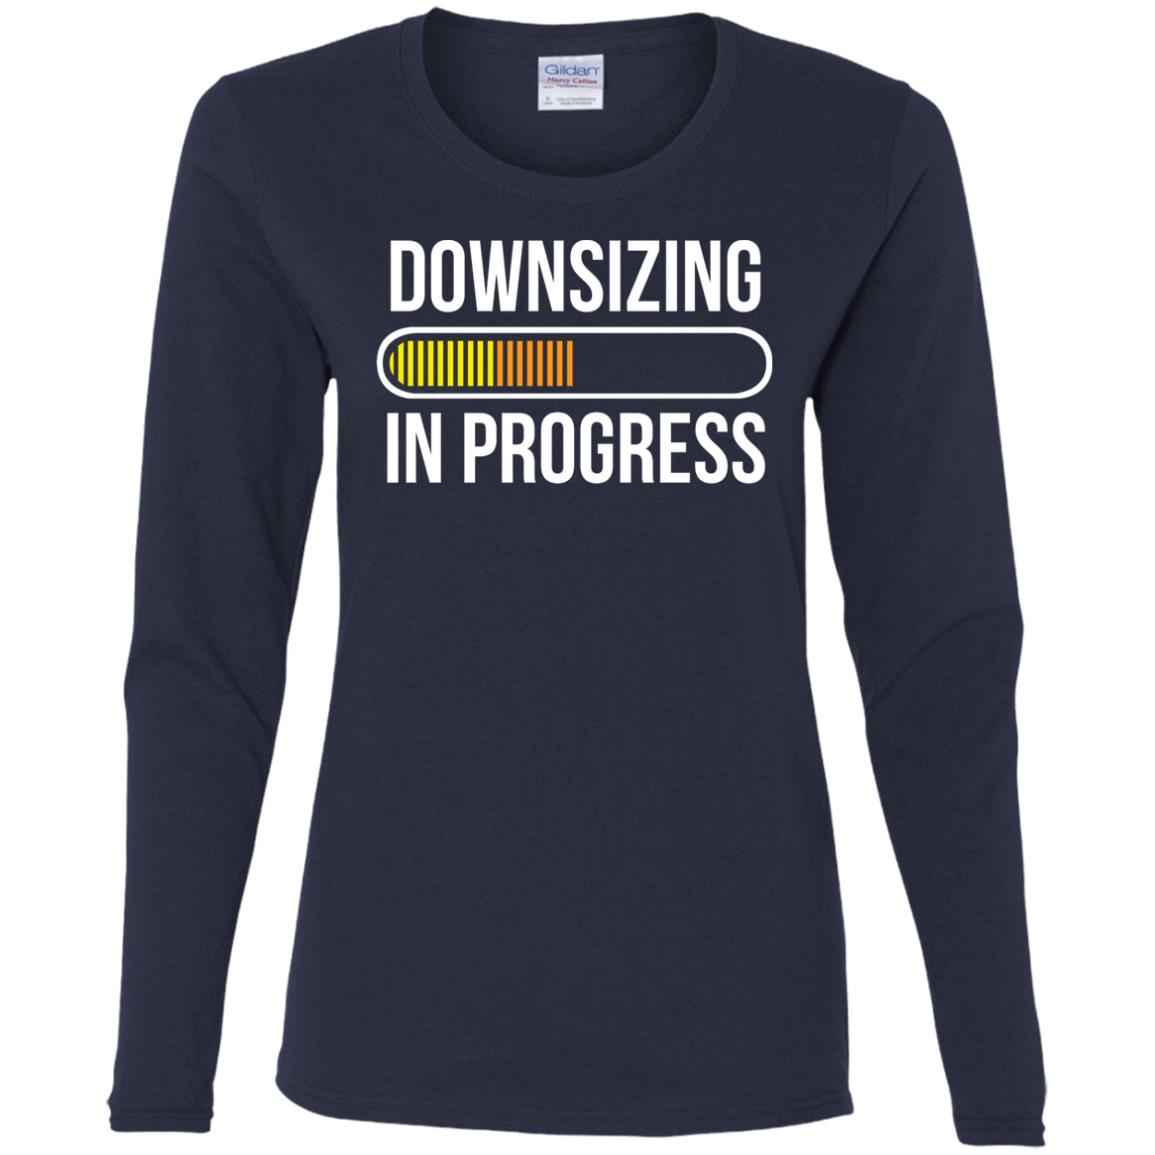 Downsizing In Progress Funny Workout For Gym Women Long Sleeve T-Shirt